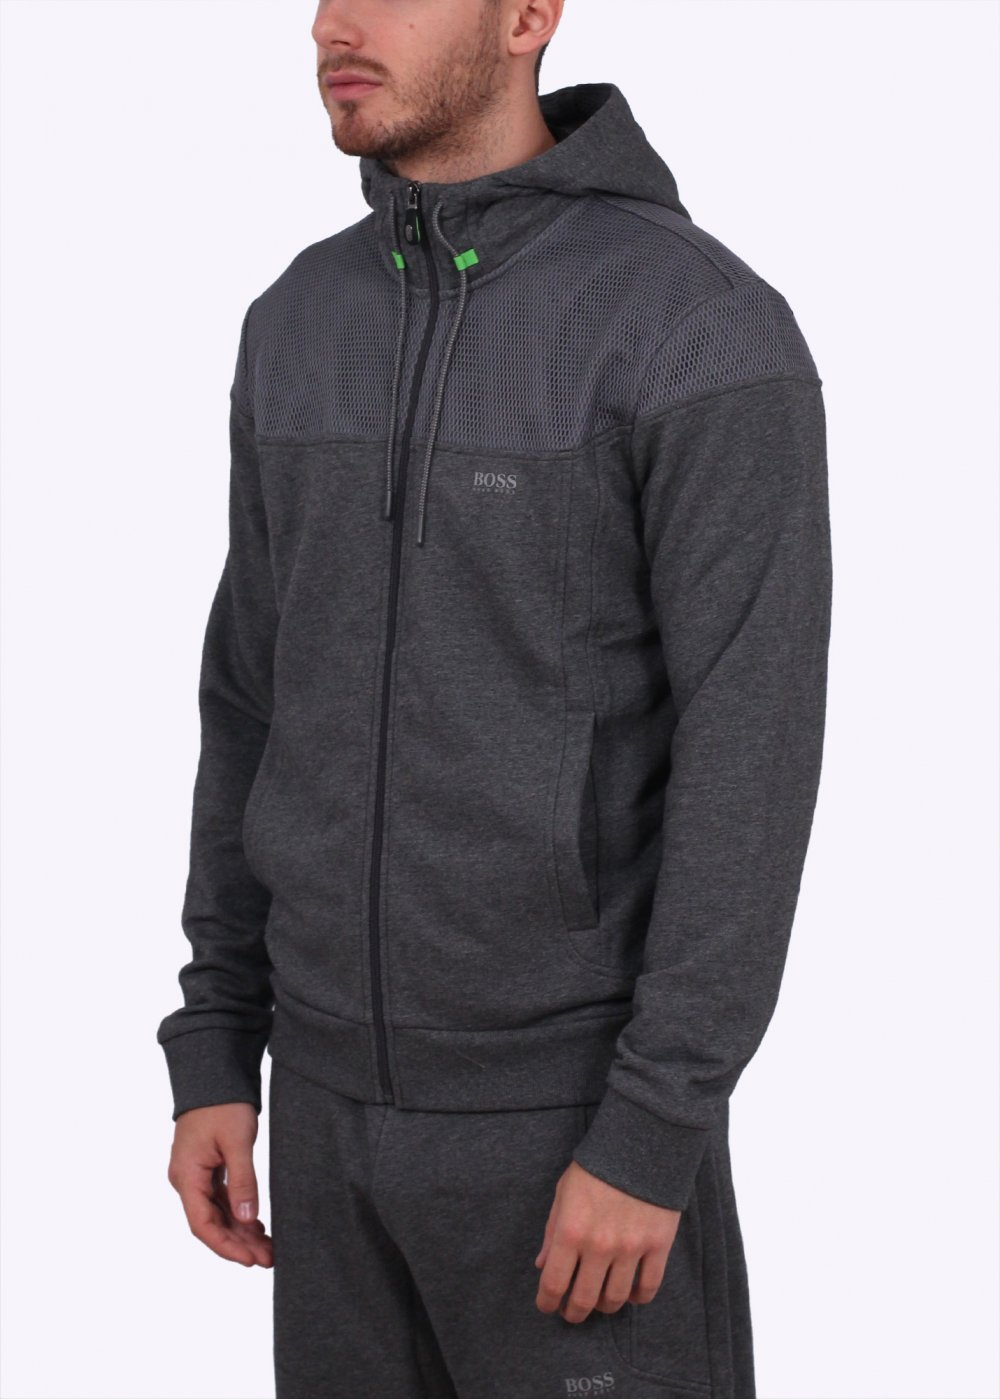 1f6432375 Hugo Boss Green Saggy 1 Hooded Sweatshirt - Medium Grey